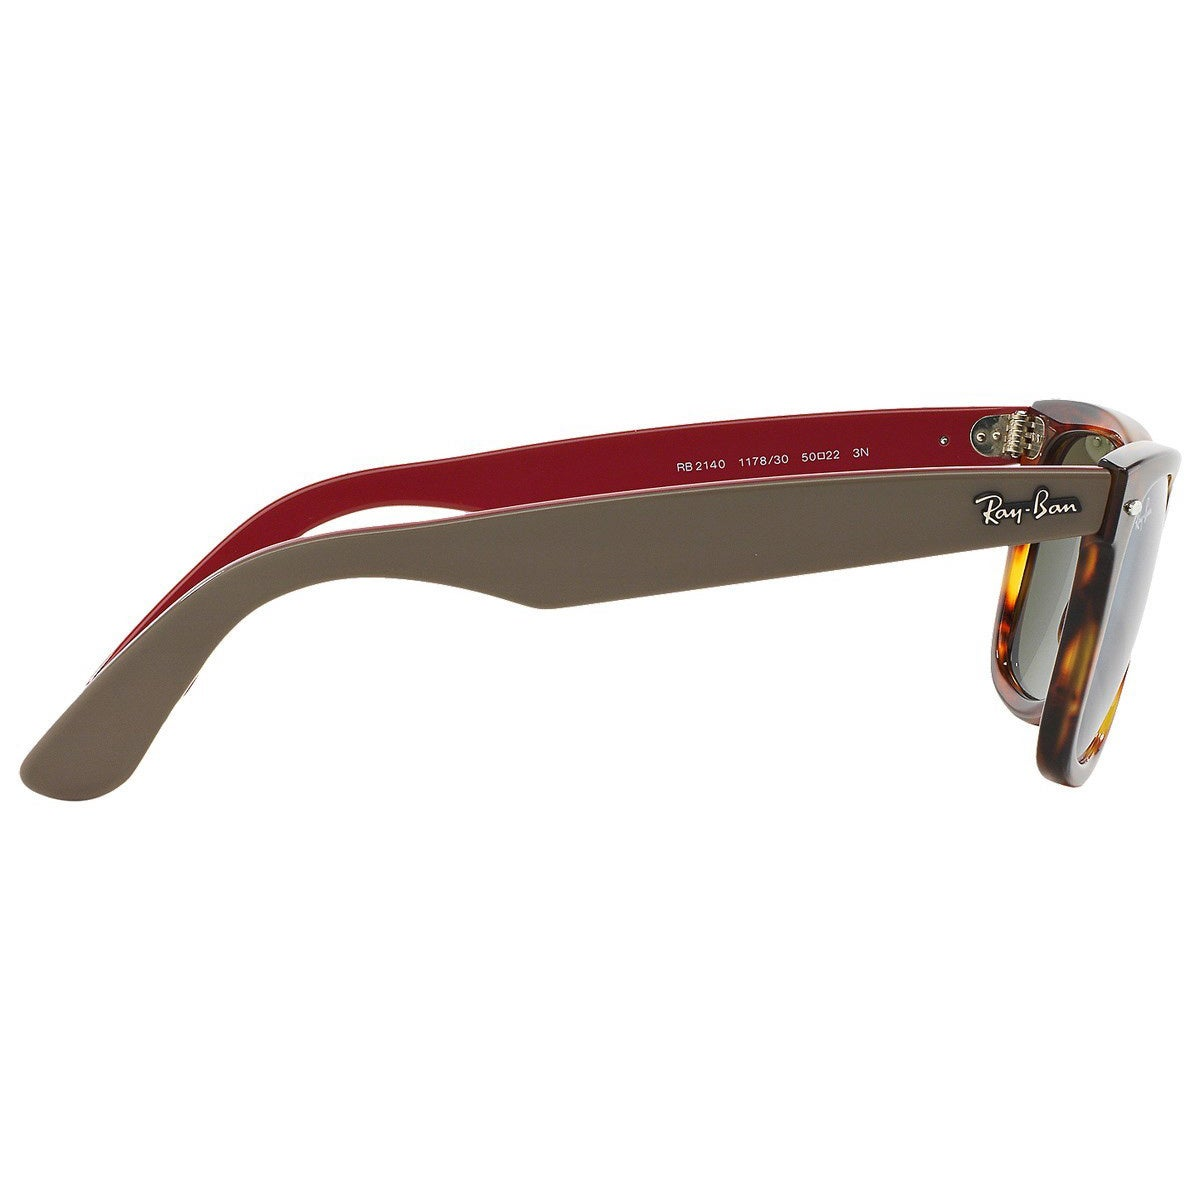 0c226522f2 Shop Ray-Ban Wayfarer RB2140 117830 Unisex Bi-color Tortoise Frame Silver  Flash Mirror Lens Sunglasses - Ships To Canada - Overstock - 11951998